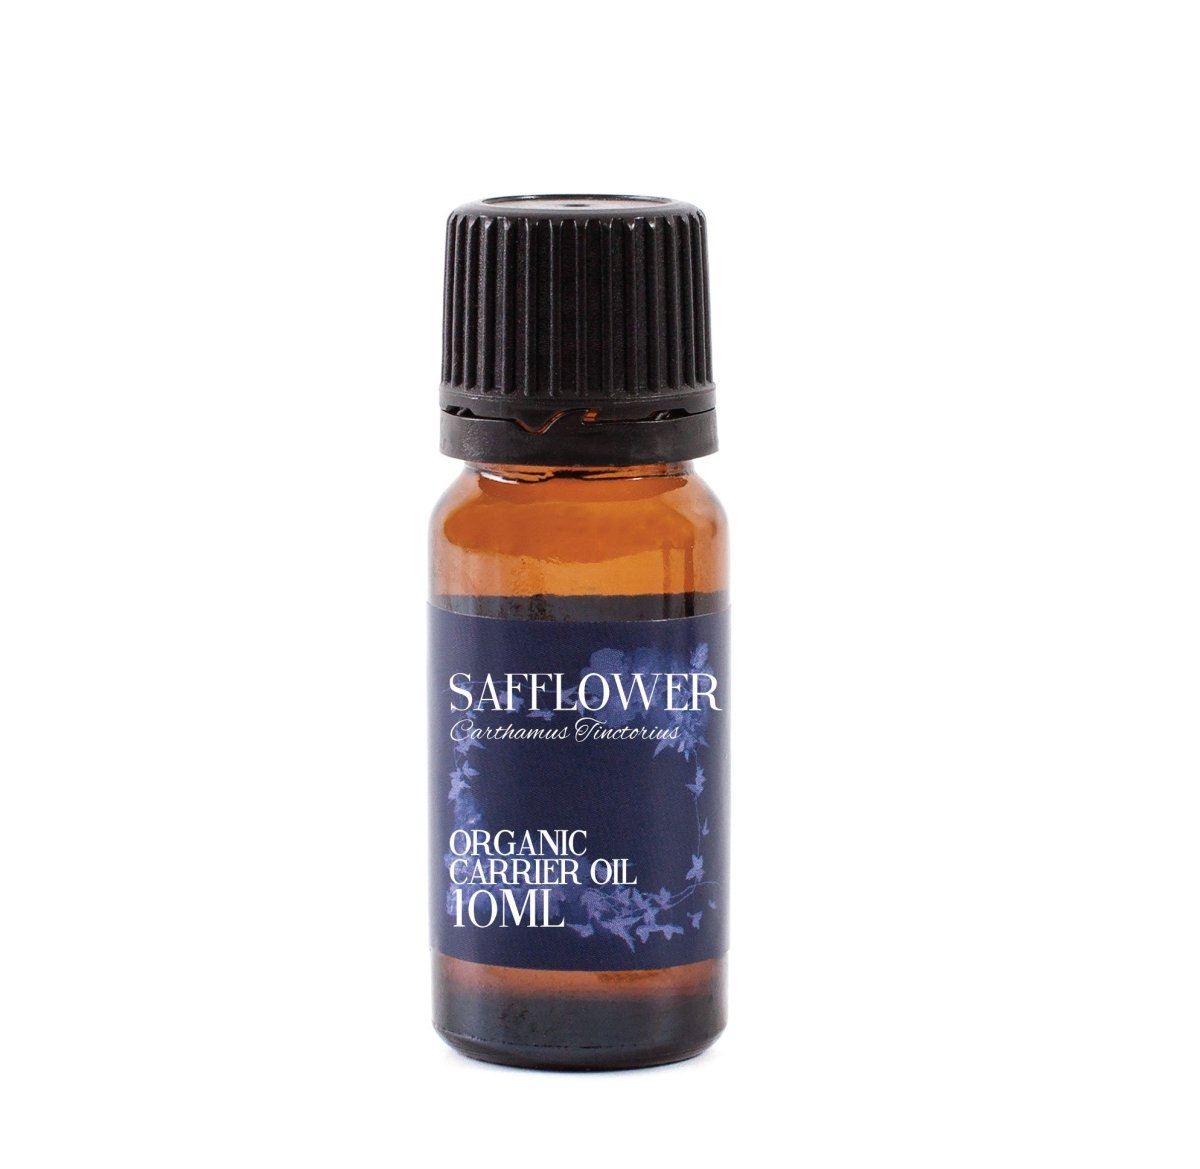 Safflower Organic Carrier Oil - Mystic Moments UK